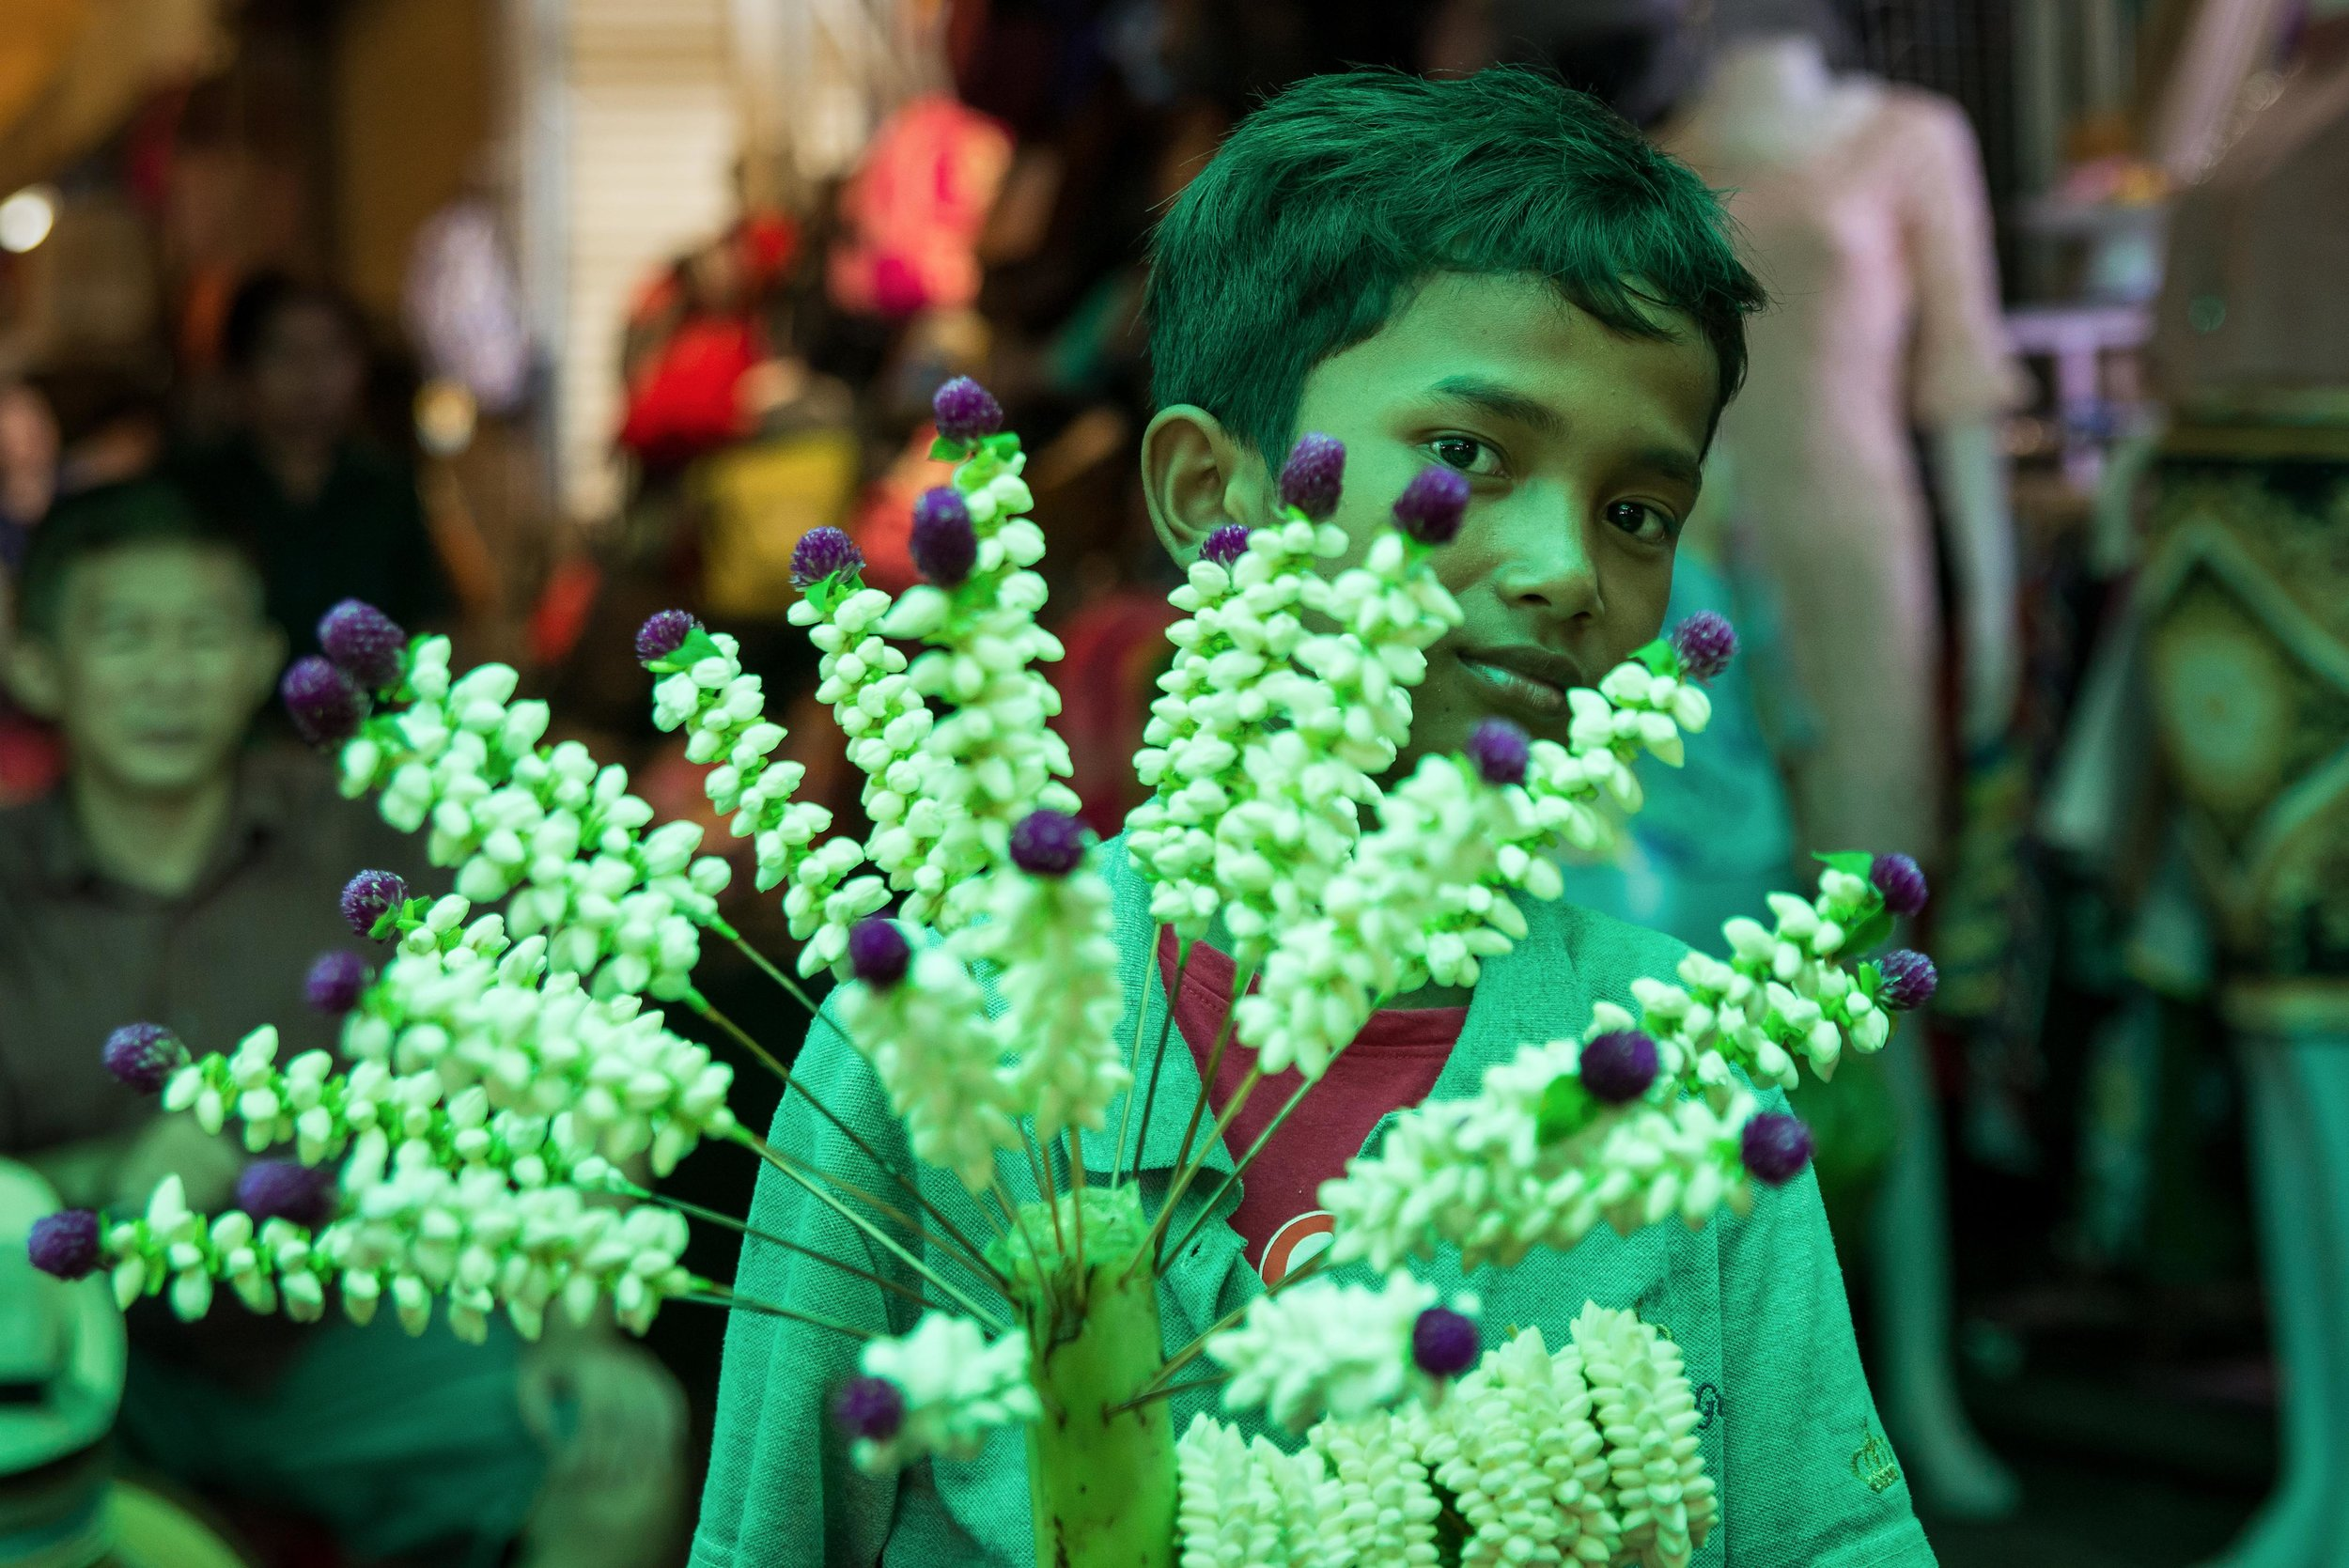 A boy holds a bouquet of flowers in Bangkok, Thailand. April 2016.